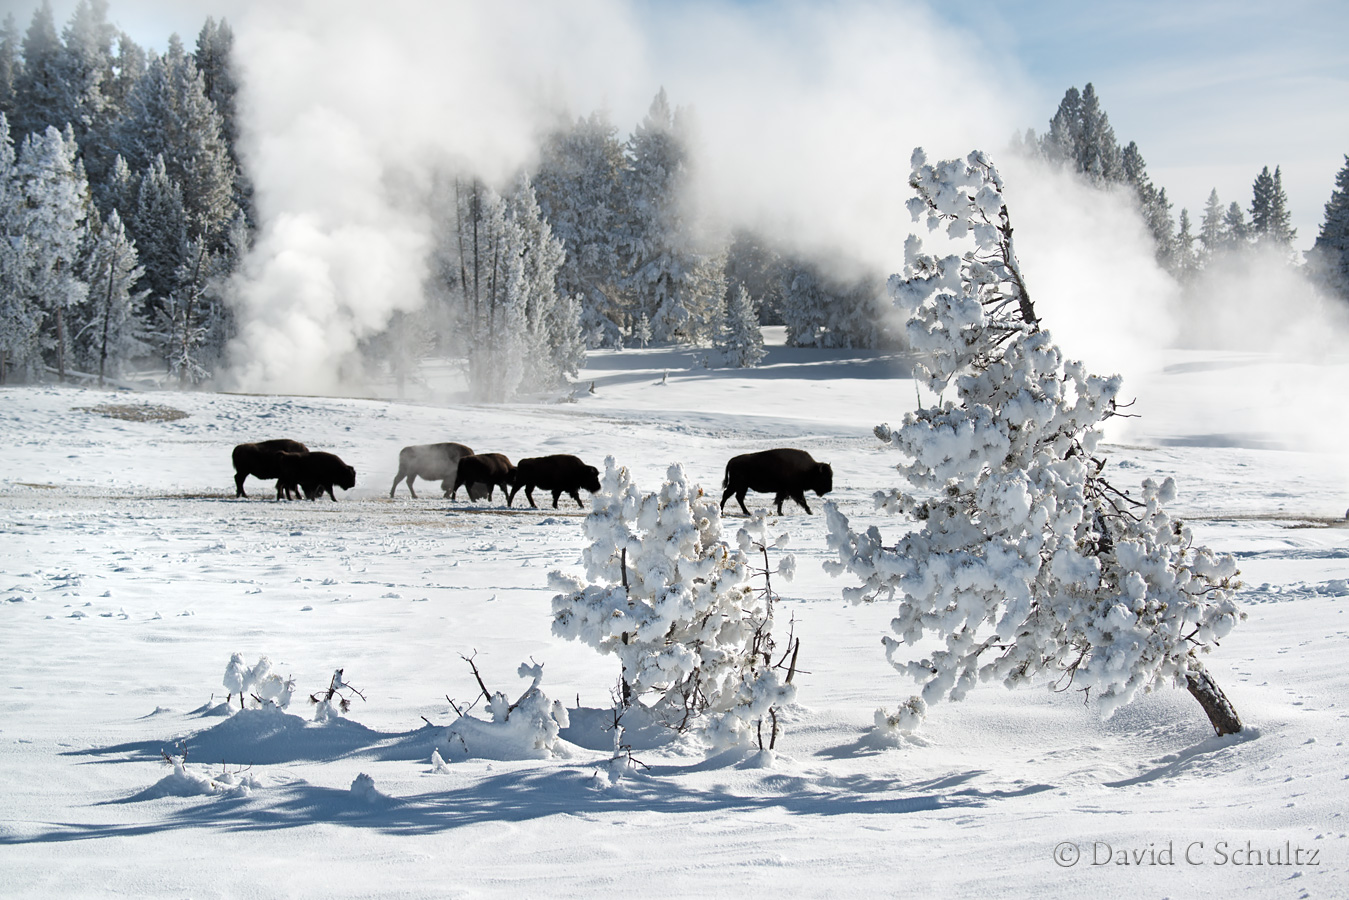 Bison and geysers in Yellowstone - Image #161-2201